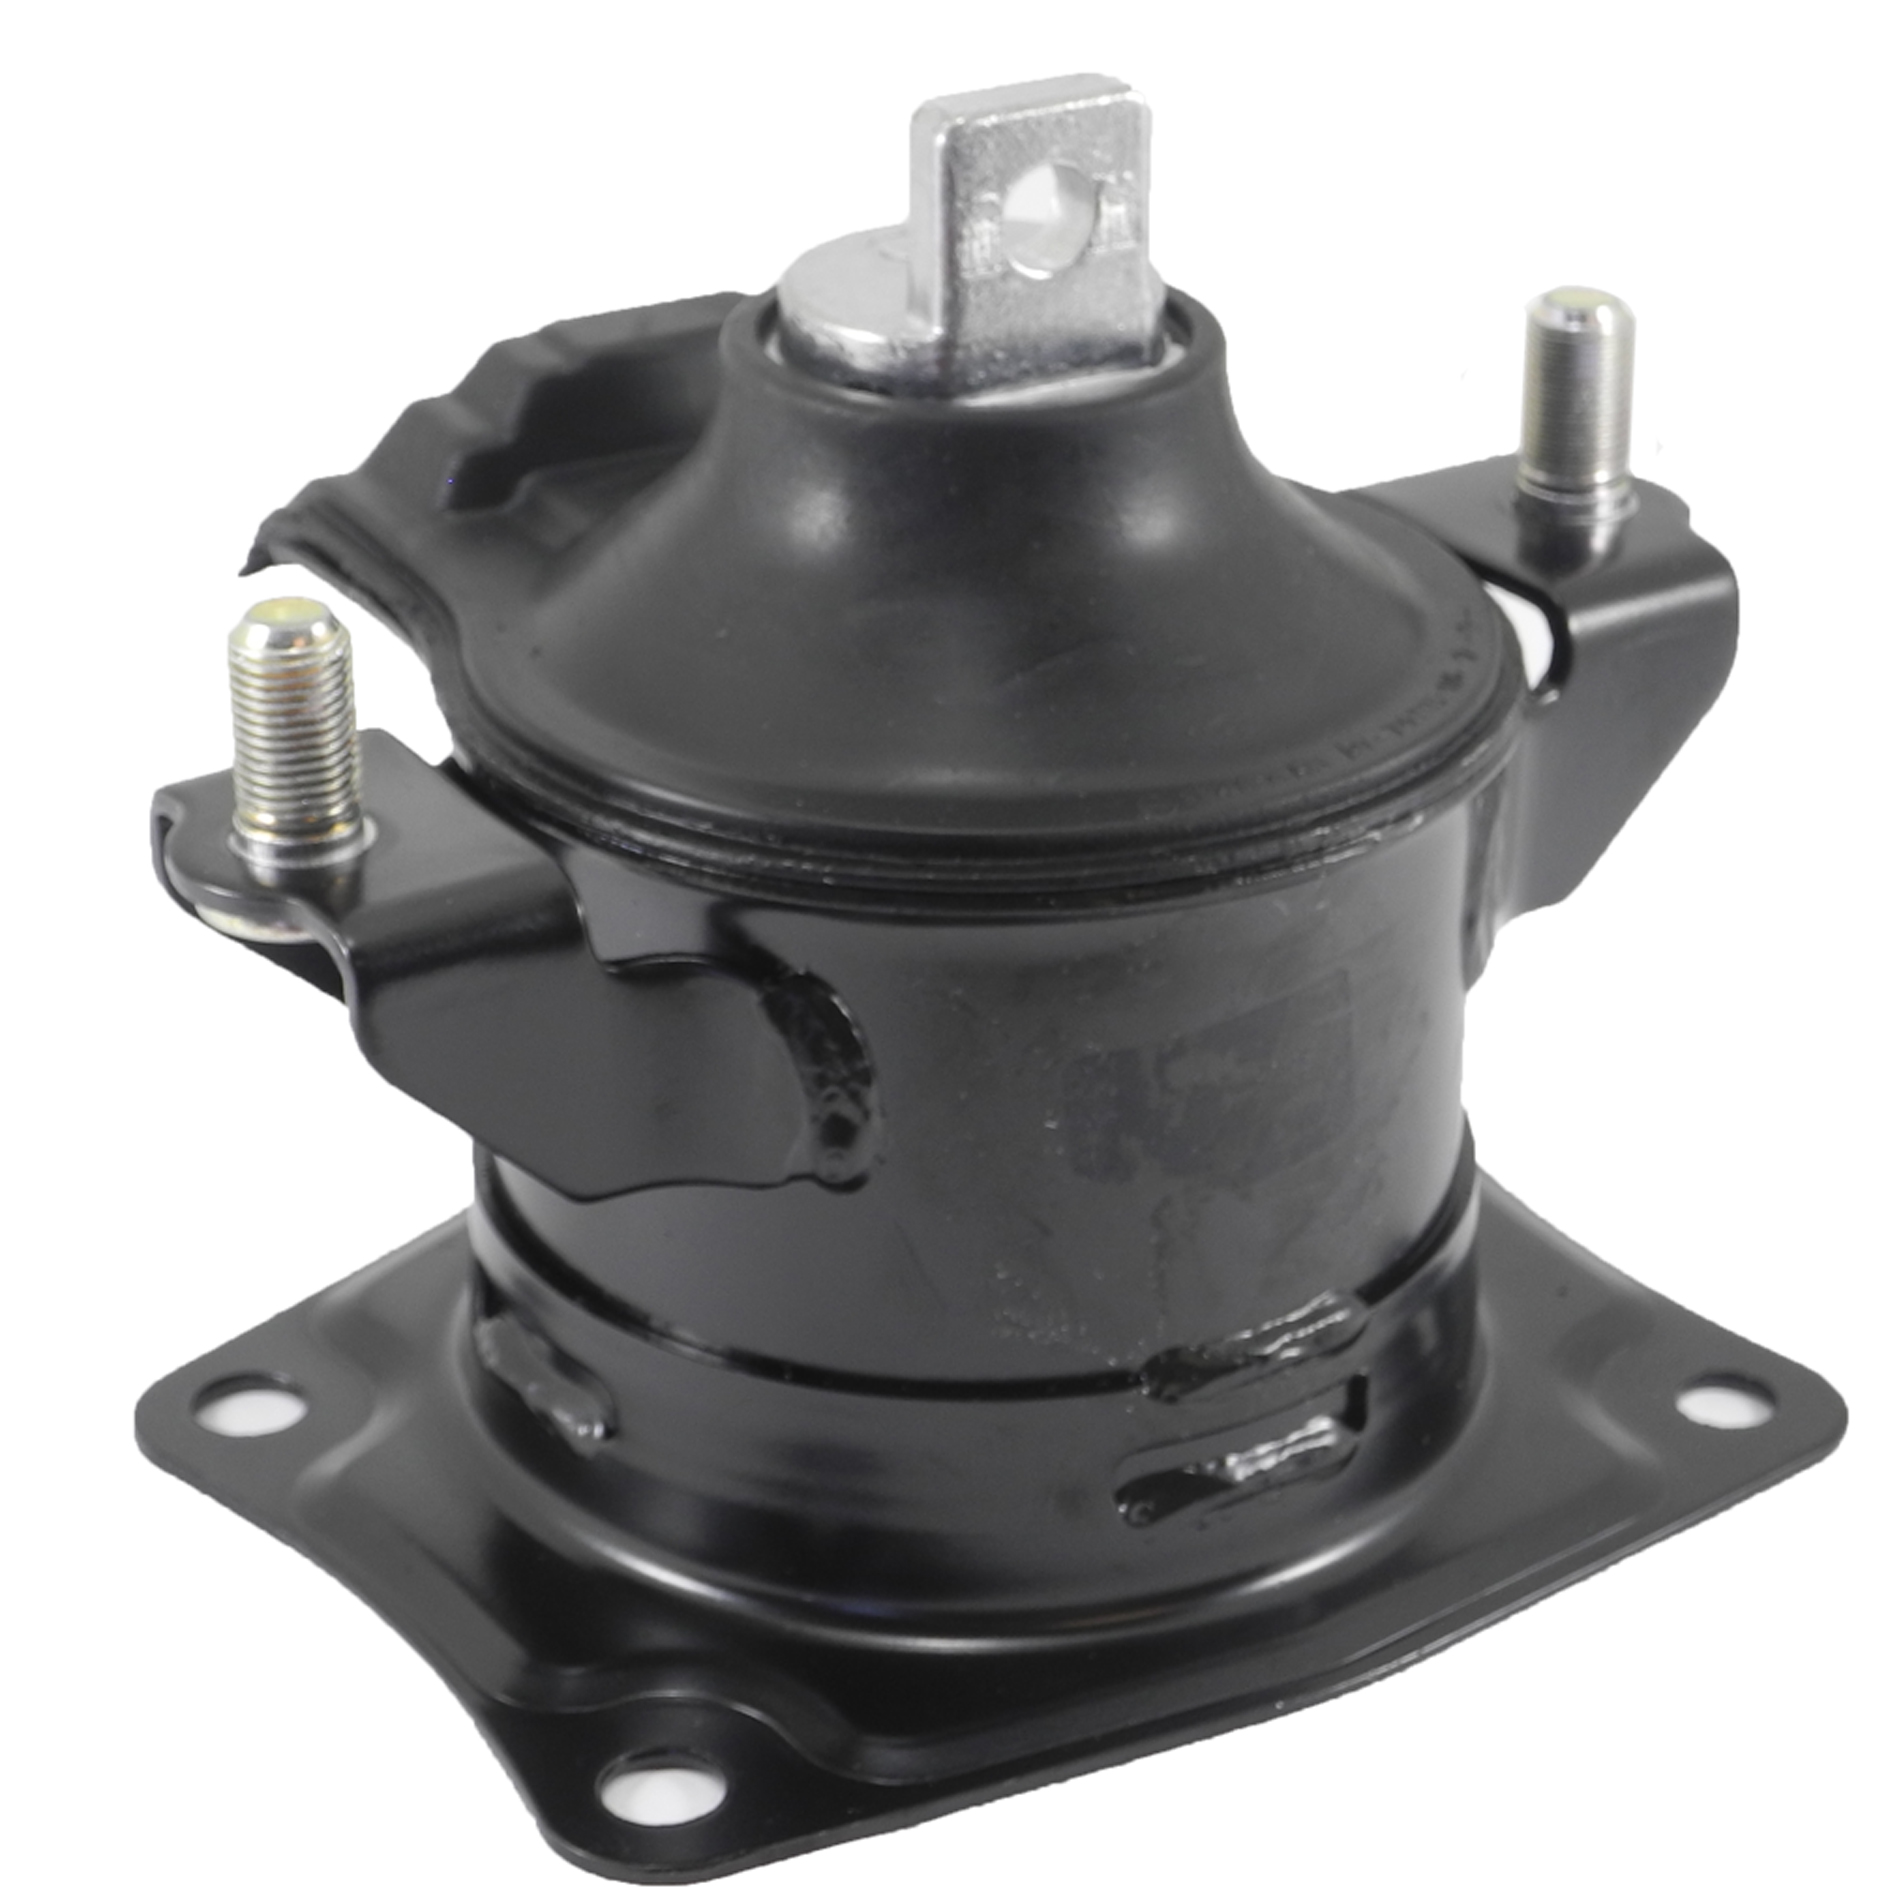 Engine Motor Mount 4527 Rear For Honda Accord 3.0L Acura